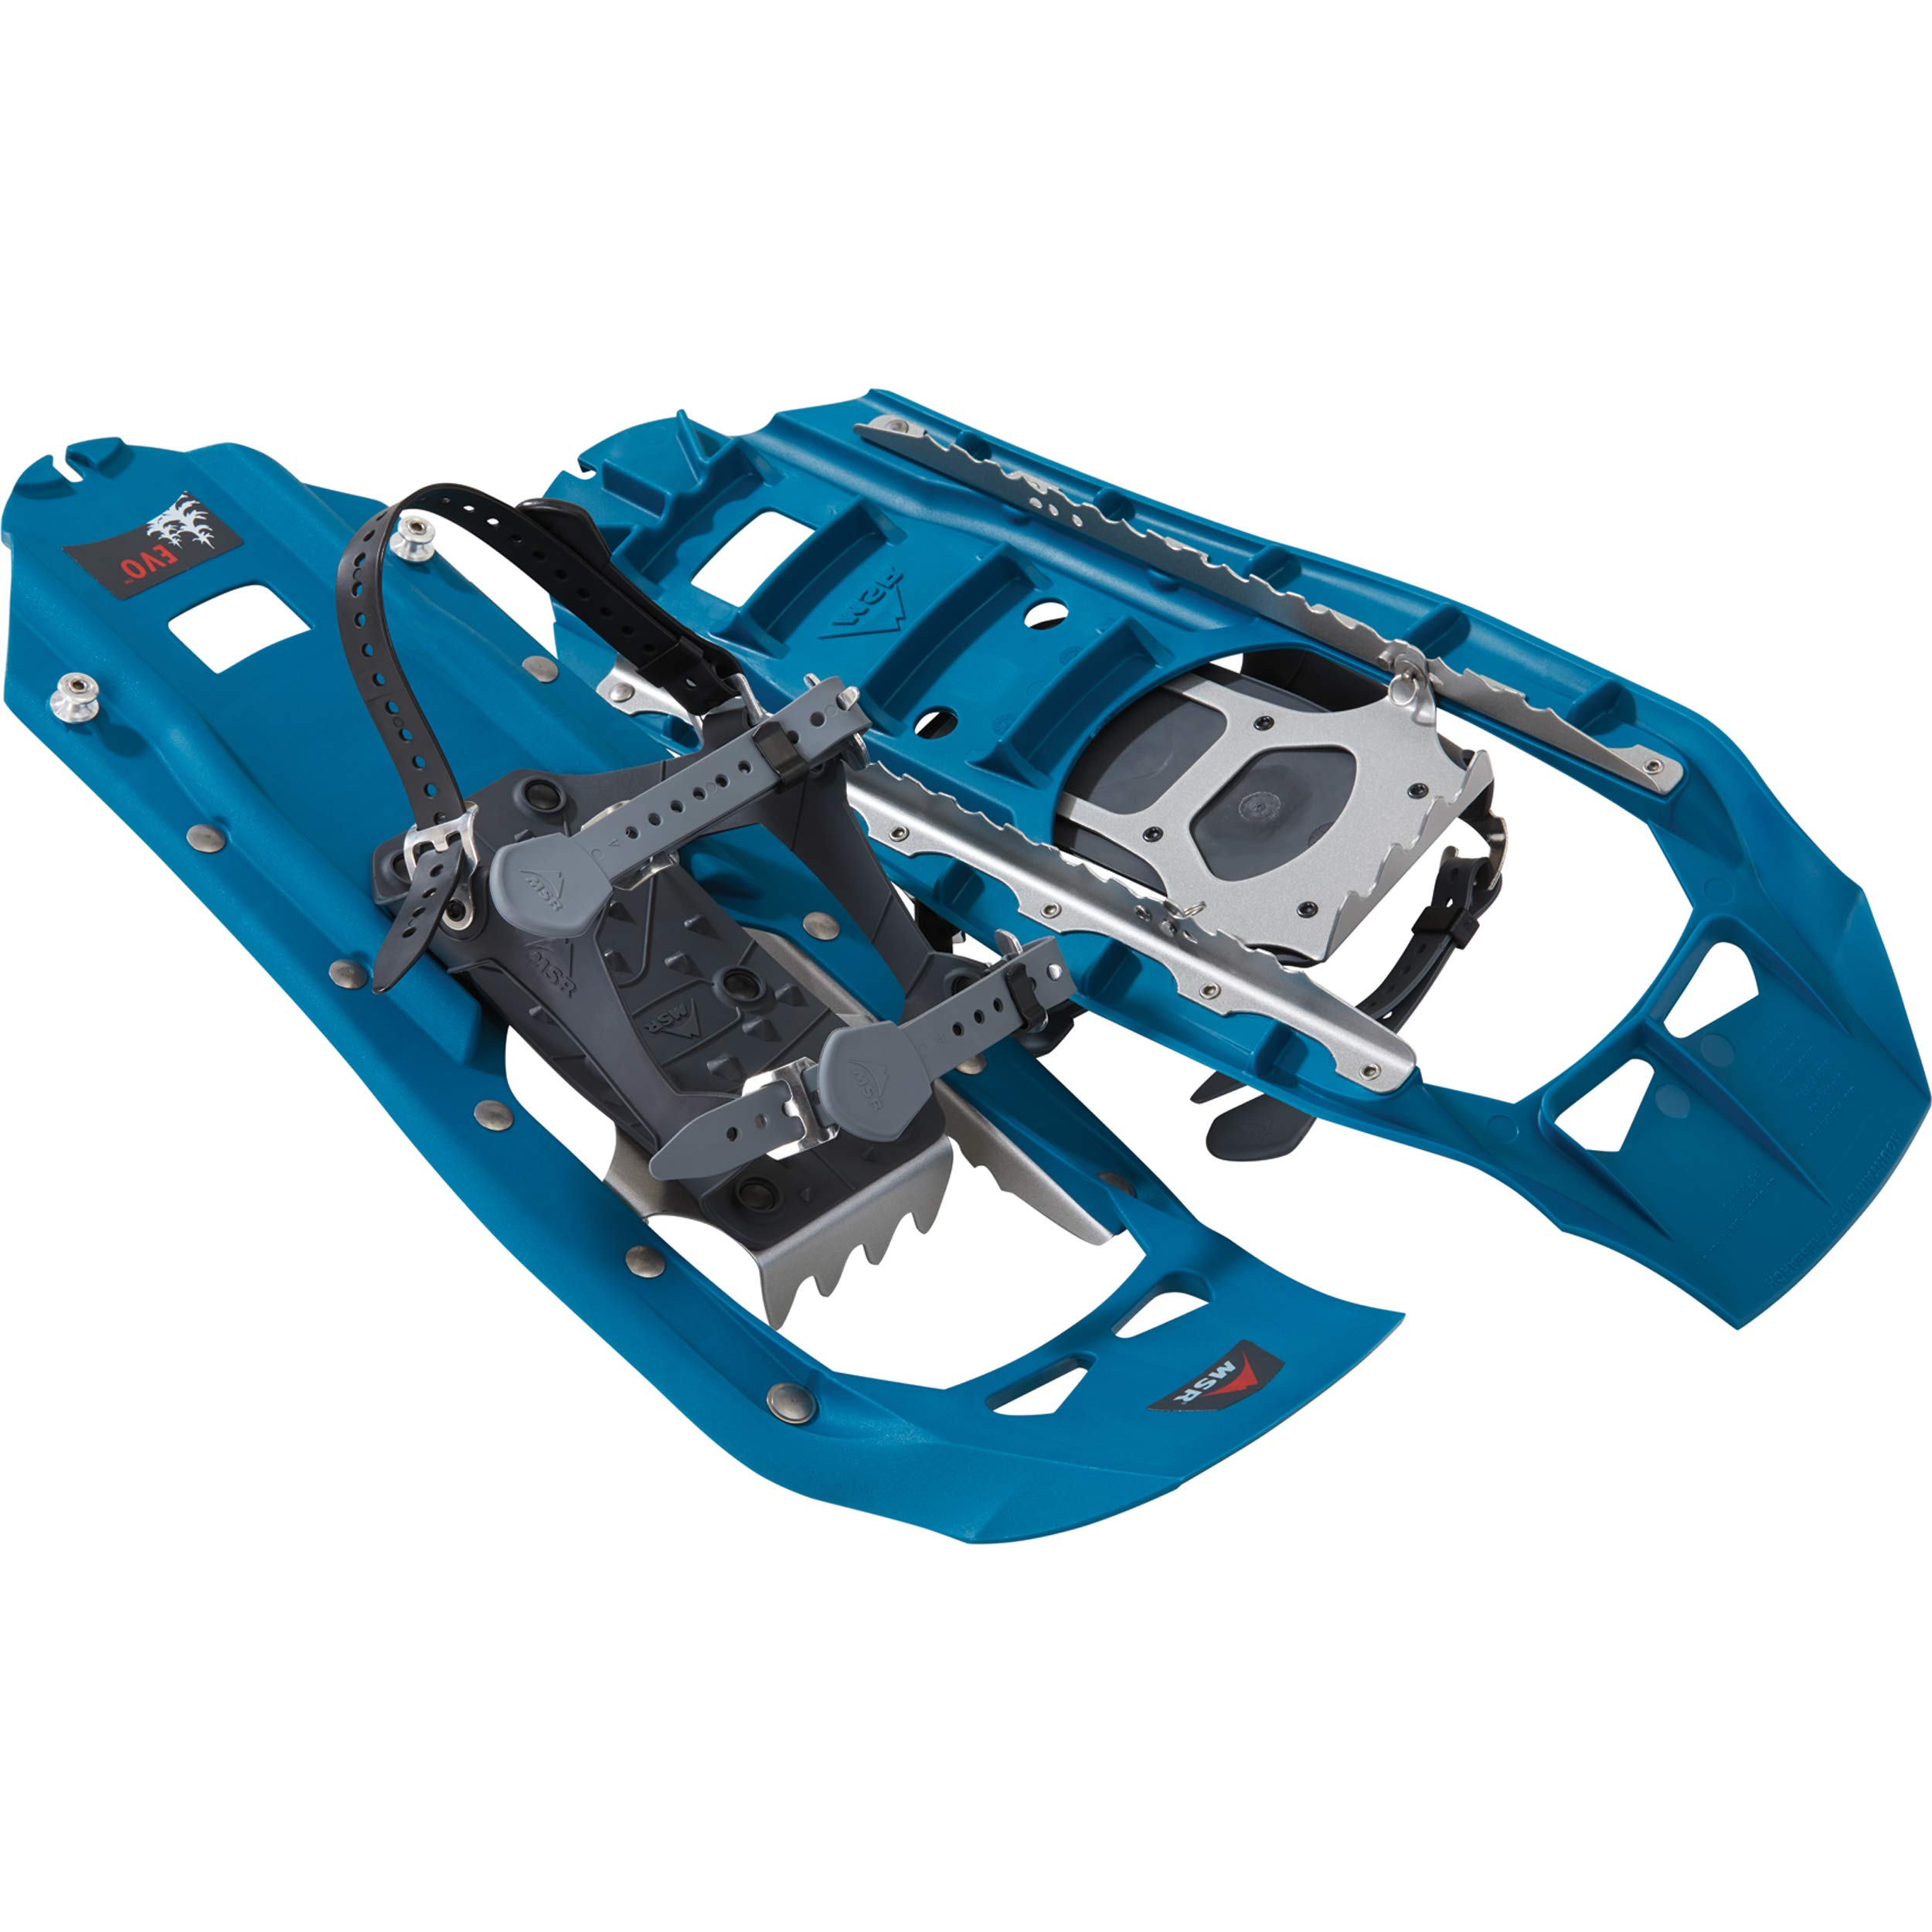 MSR Evo Trail 22-Inch Hiking Snowshoes, Dark Teal by MSR